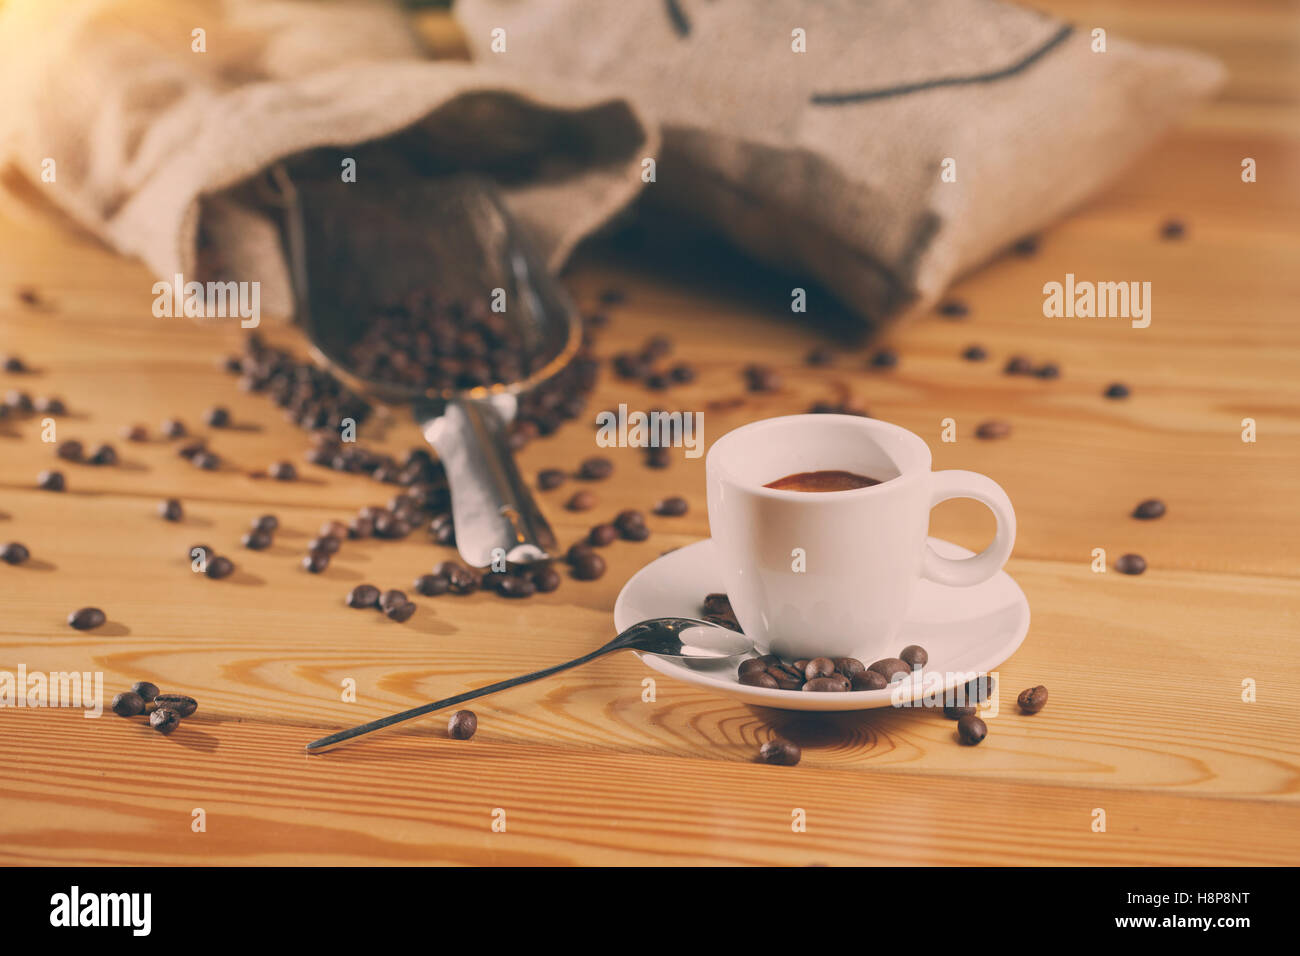 Cup of coffee, bag and scoop on old wooden background - Stock Image